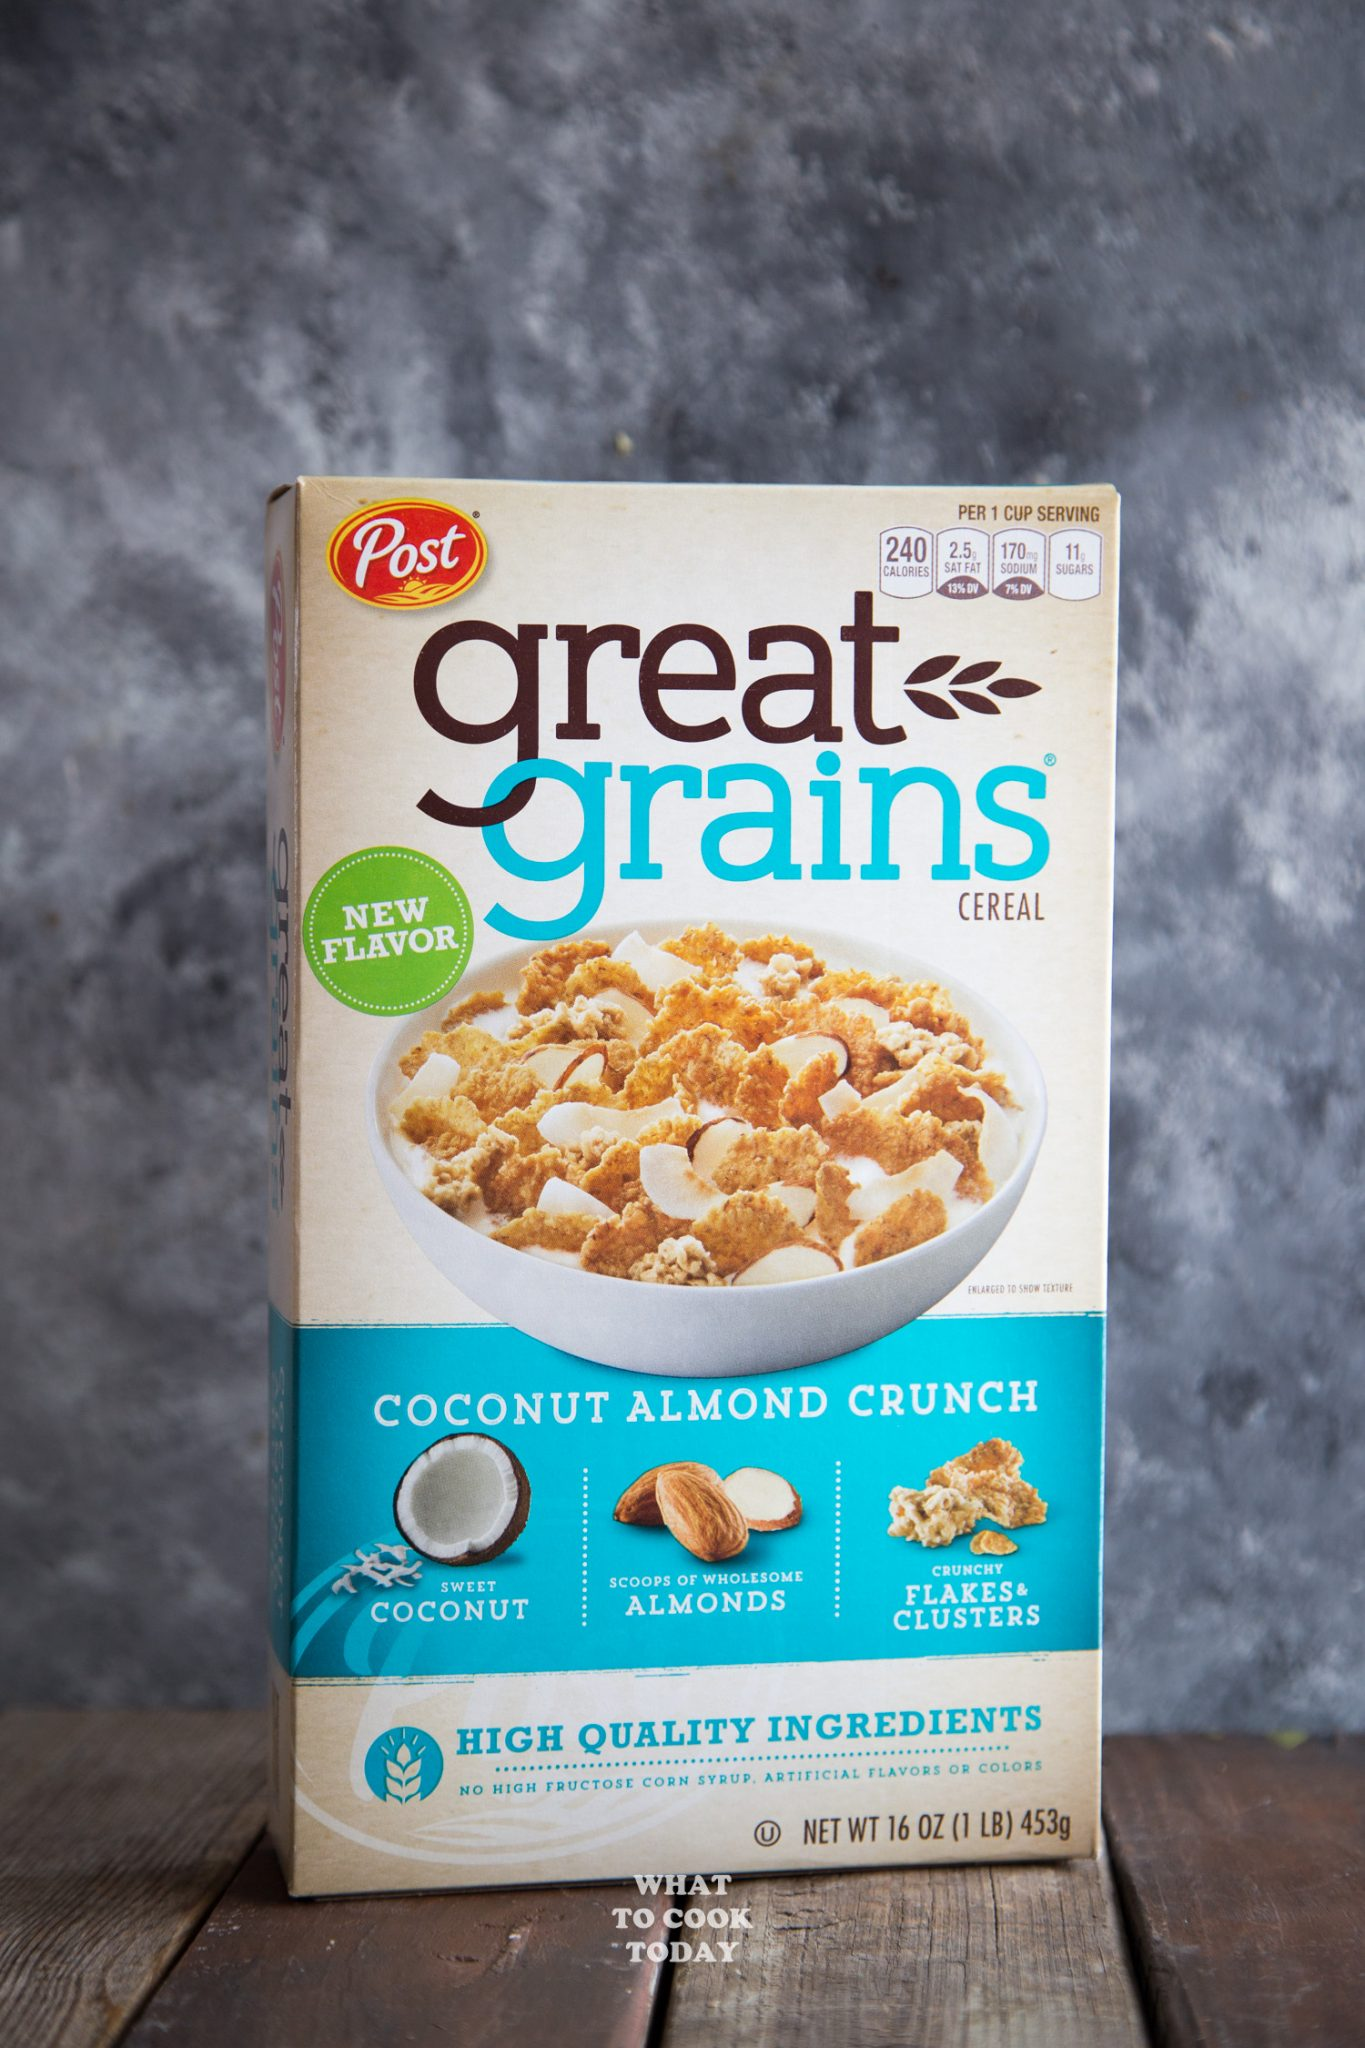 Post Great Grains Coconut Almond Crunch #ad #CelebrateGoodness #GreatGrainsGreatYear #quinoa